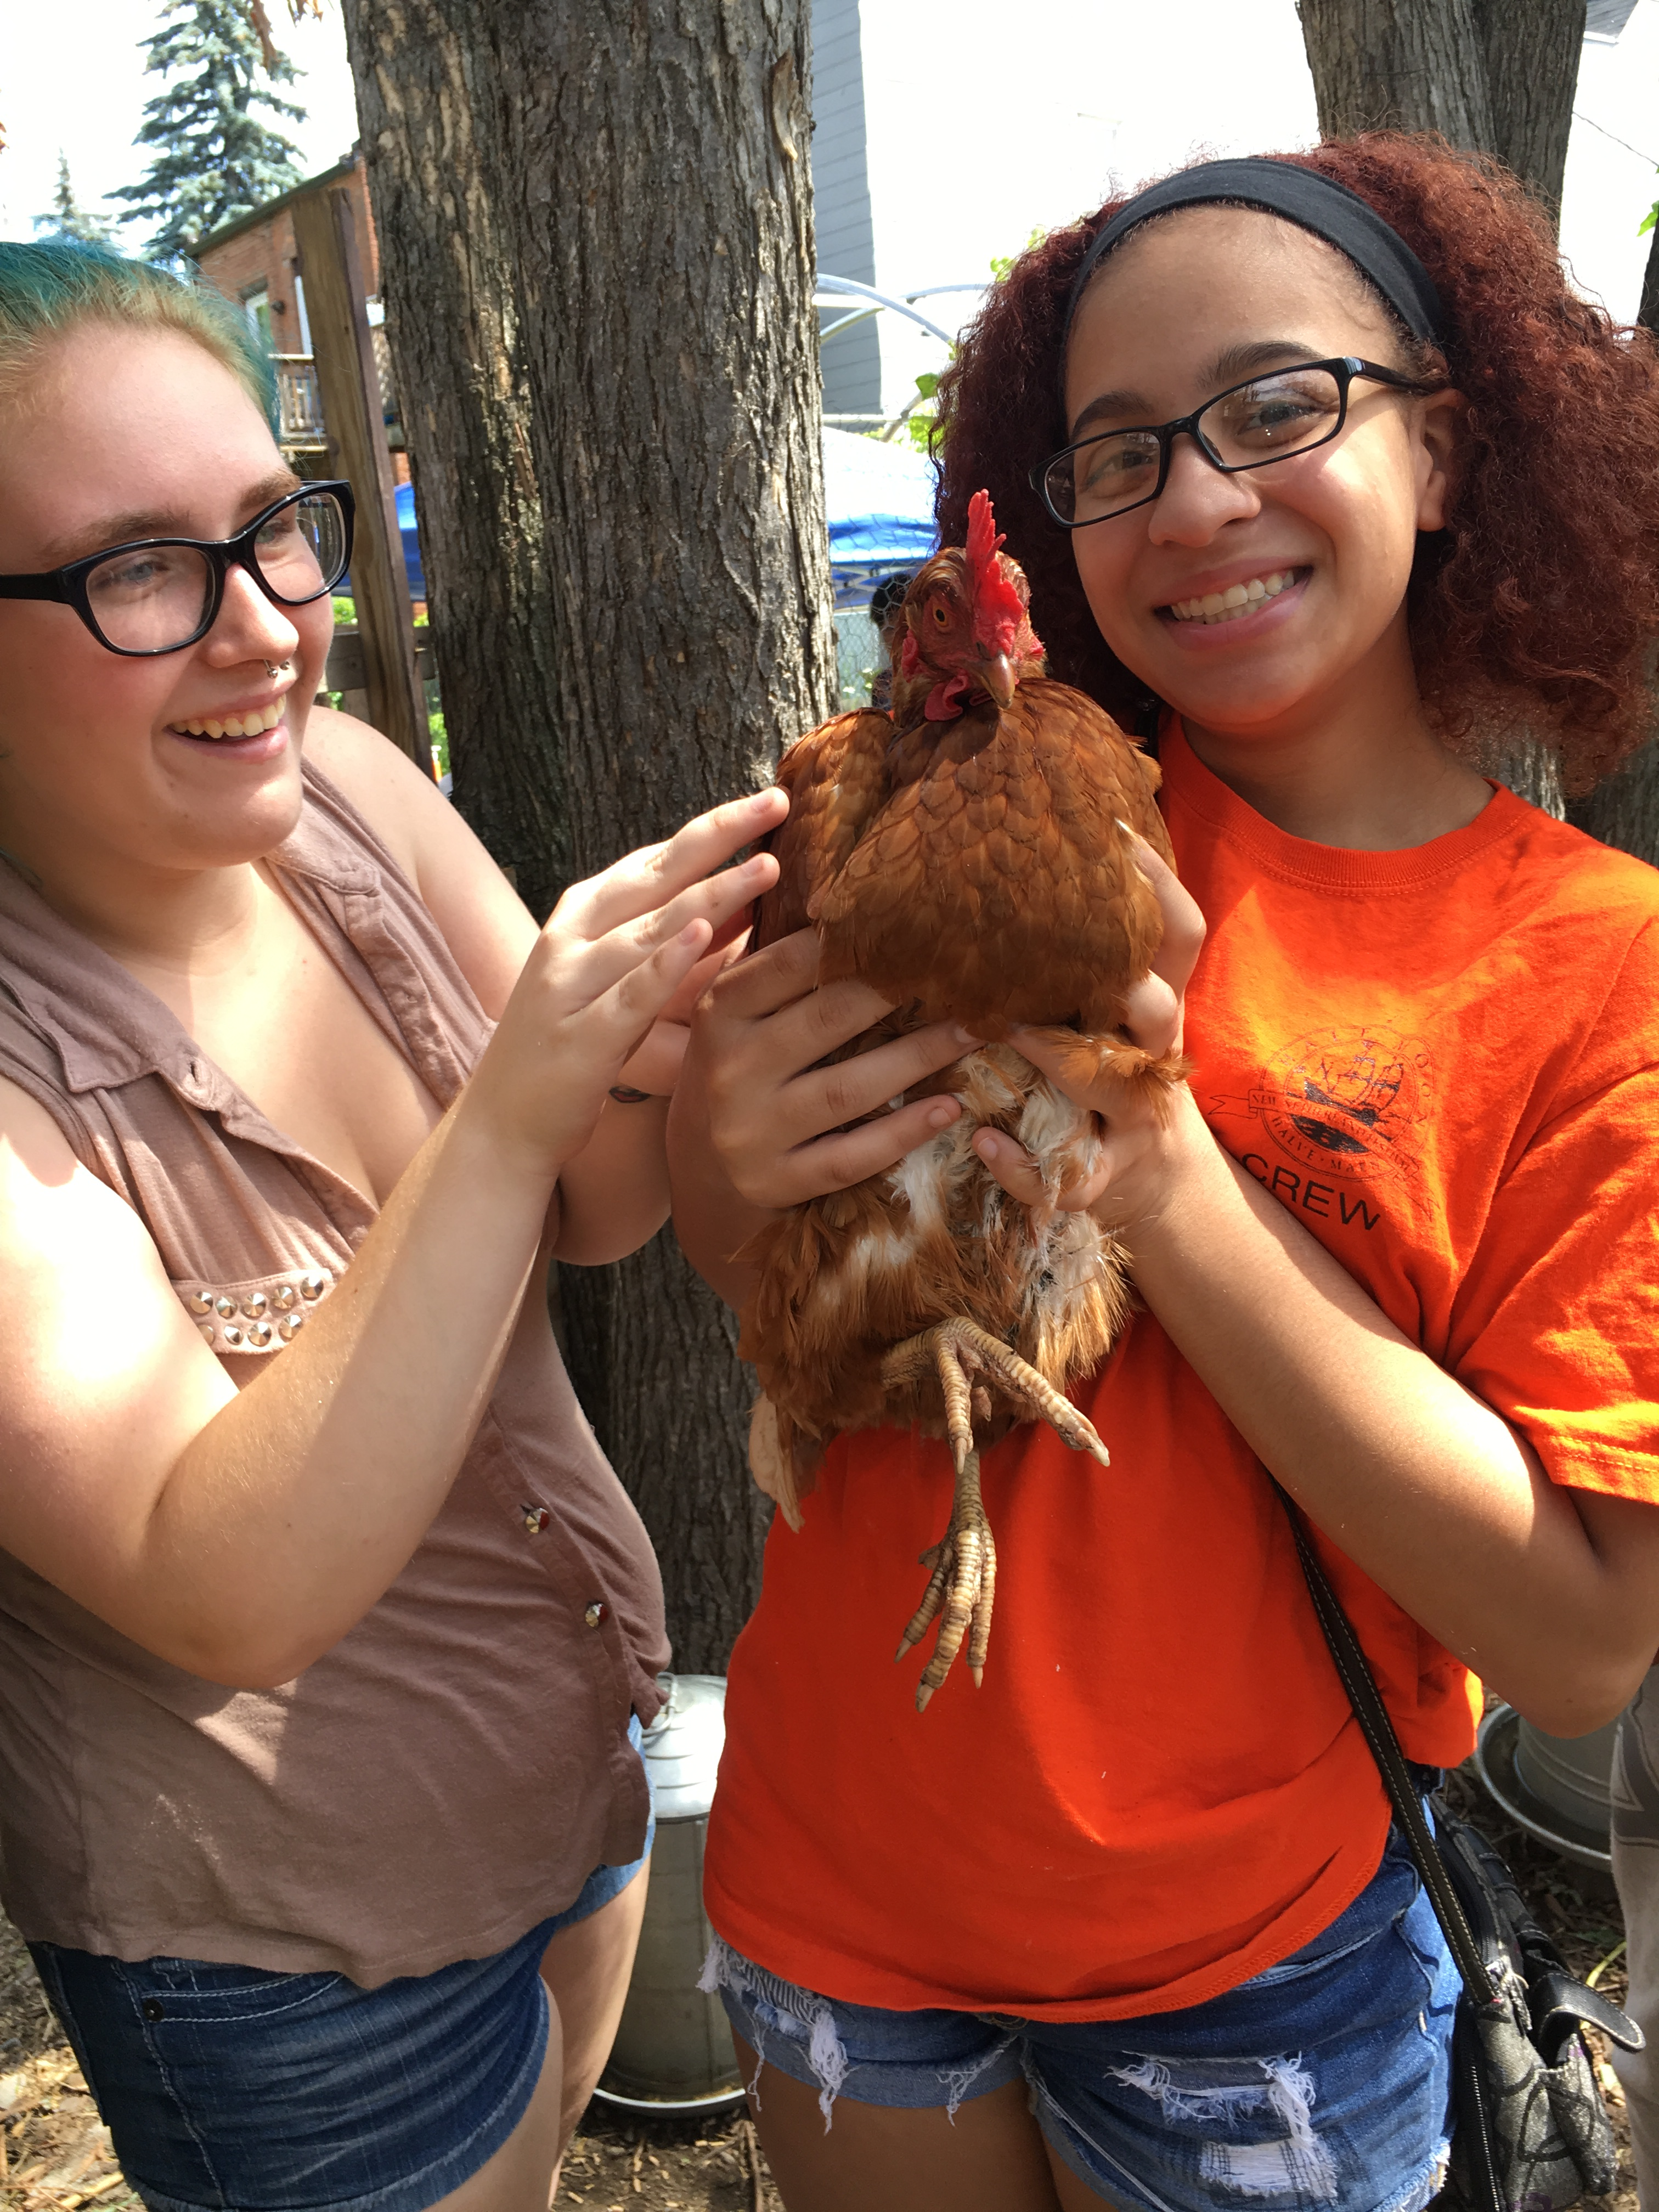 [CANCELLED] Chickens Workshop: Building a Hoop House and Chicken Care Basics!